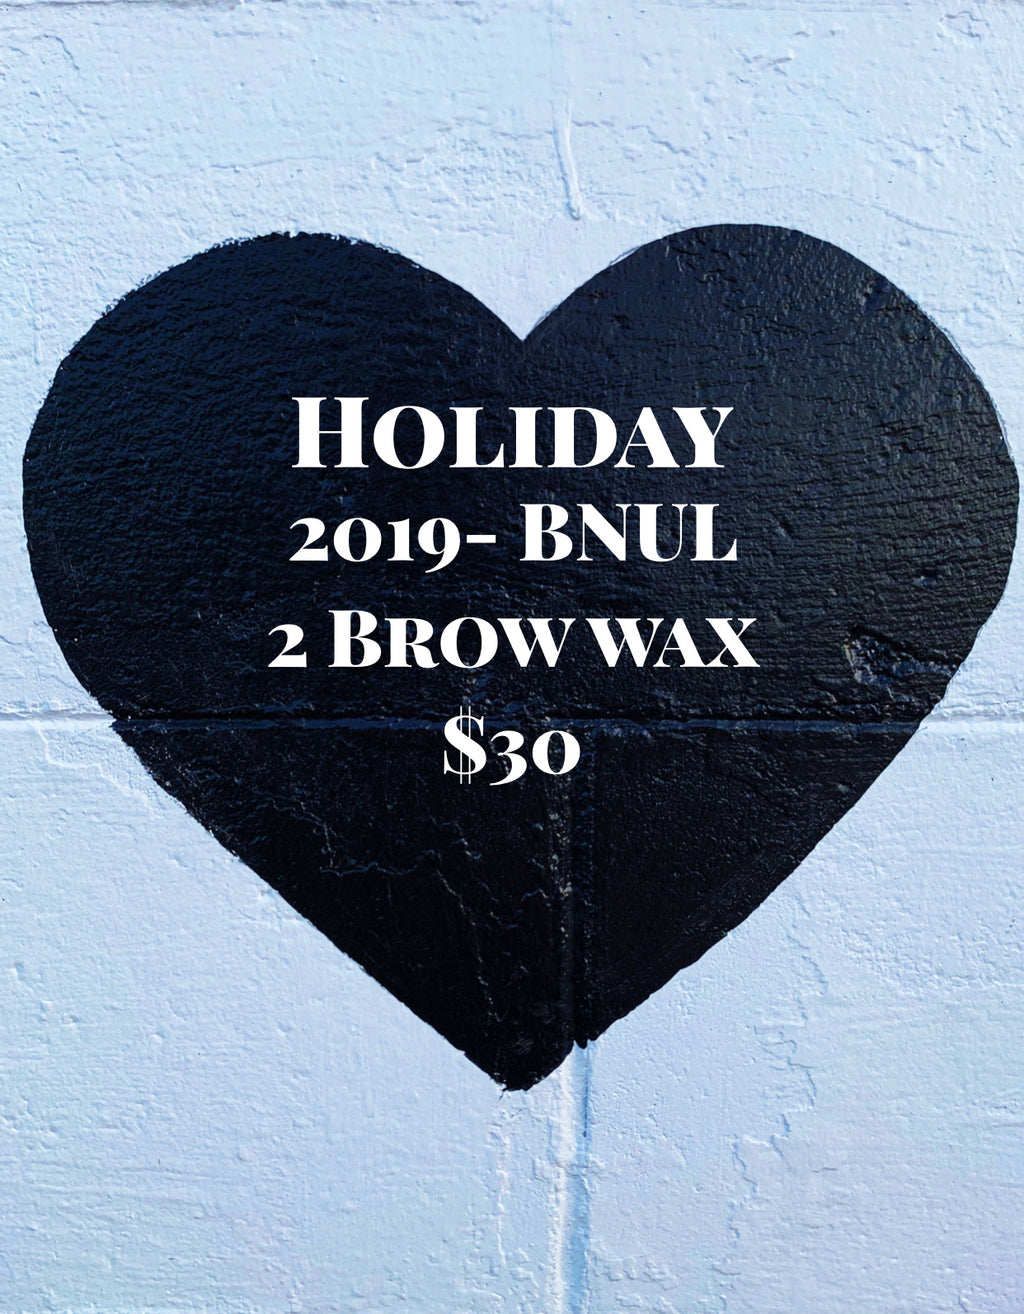 2 brows for $30 bring a friend